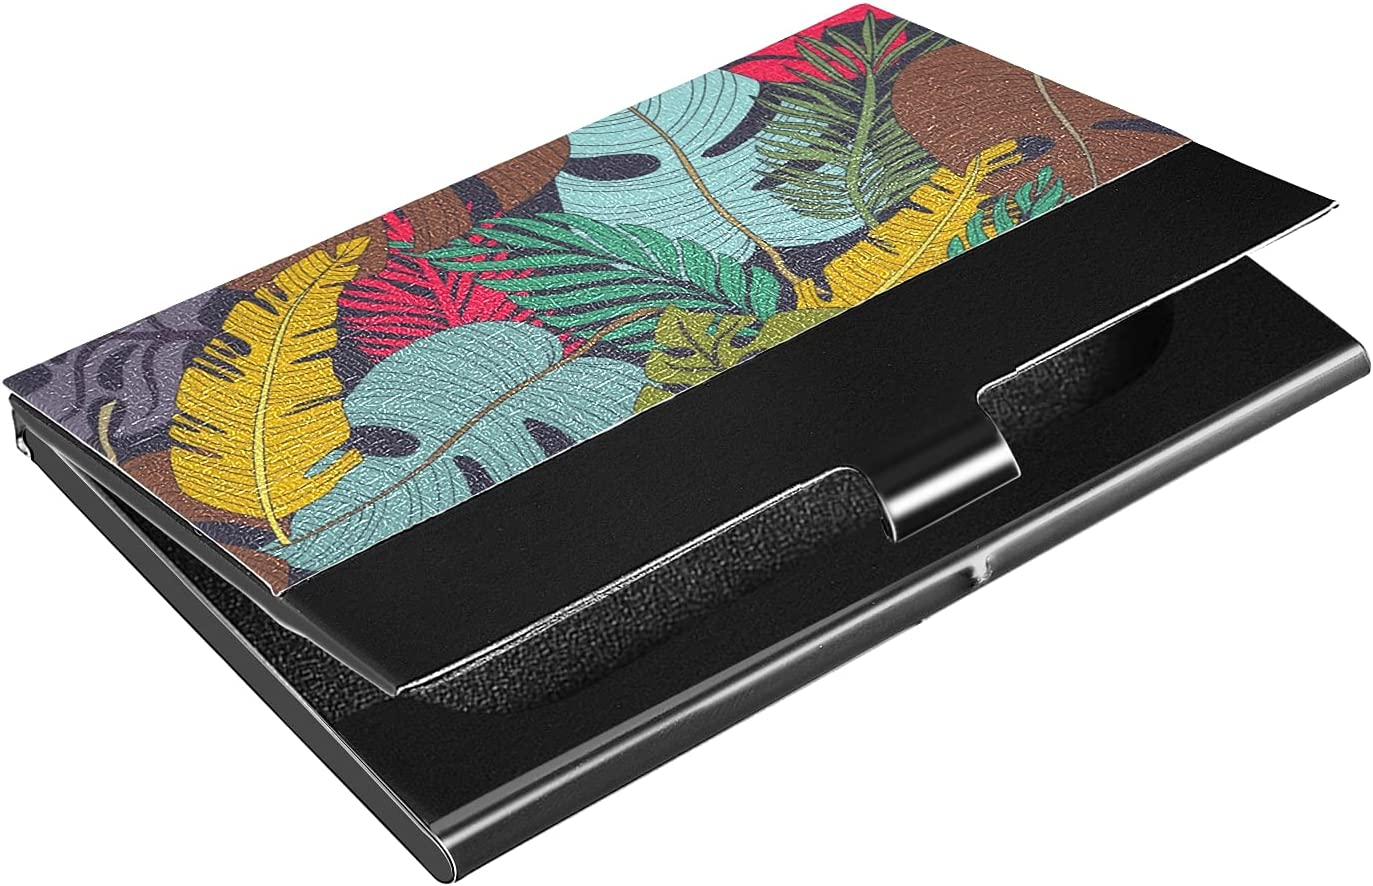 OTVEE Palm Leaves Business Card Holder Wallet Stainless Steel & Leather Pocket Business Card Case Organizer Slim Name Card ID Card Holders Credit Card Wallet Carrier Purse for Women Men